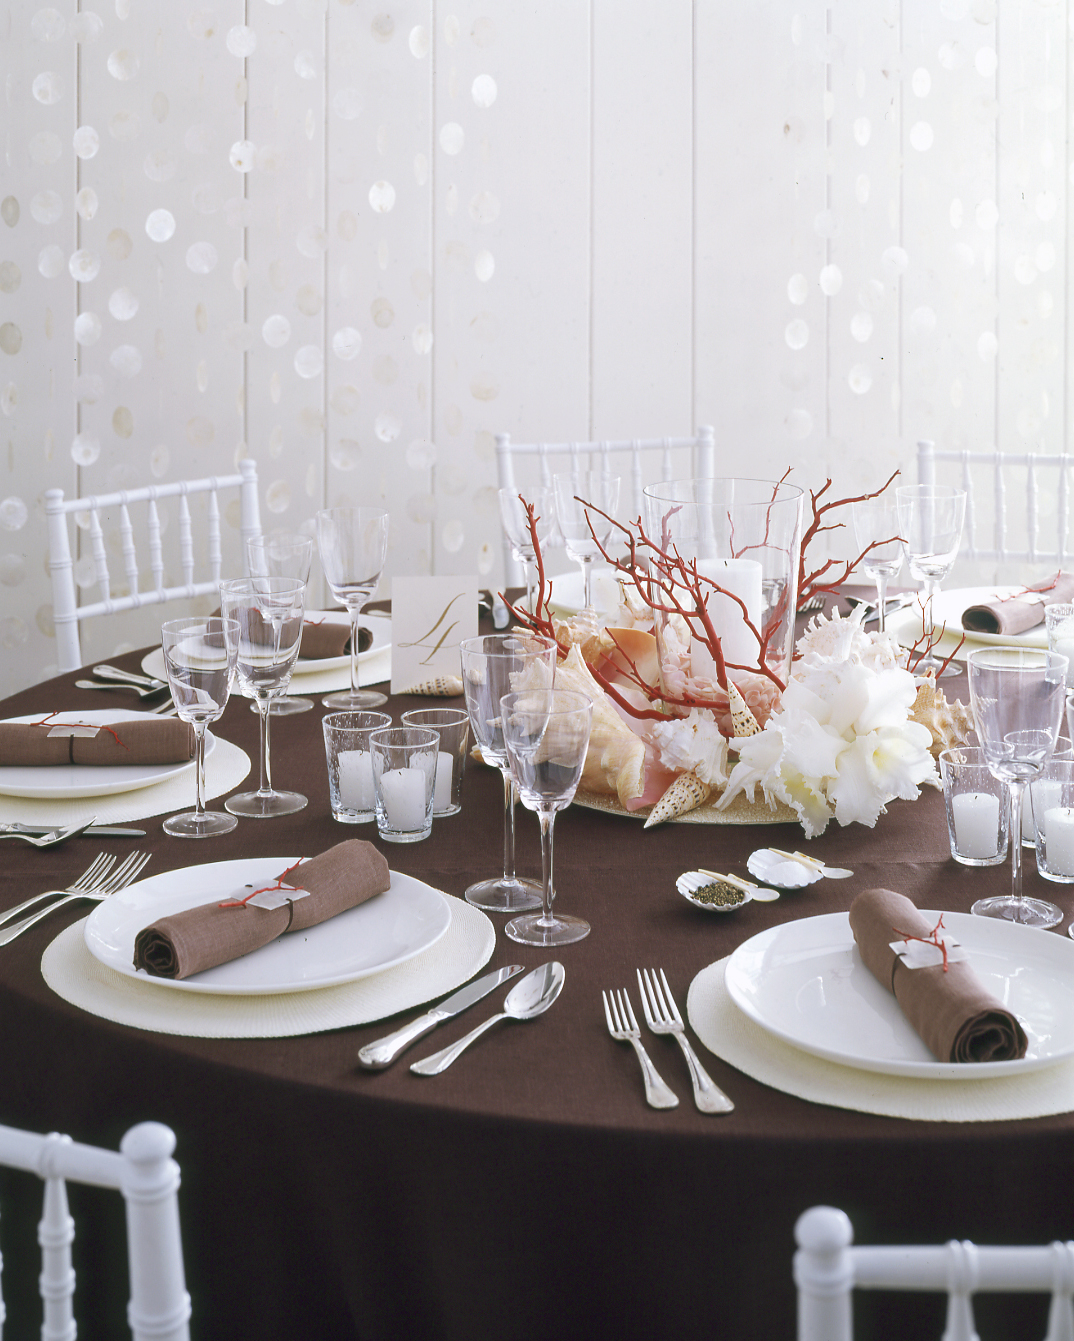 diy-beach-wedding-ideas-seashell-centerpiece-su05-0615.jpg